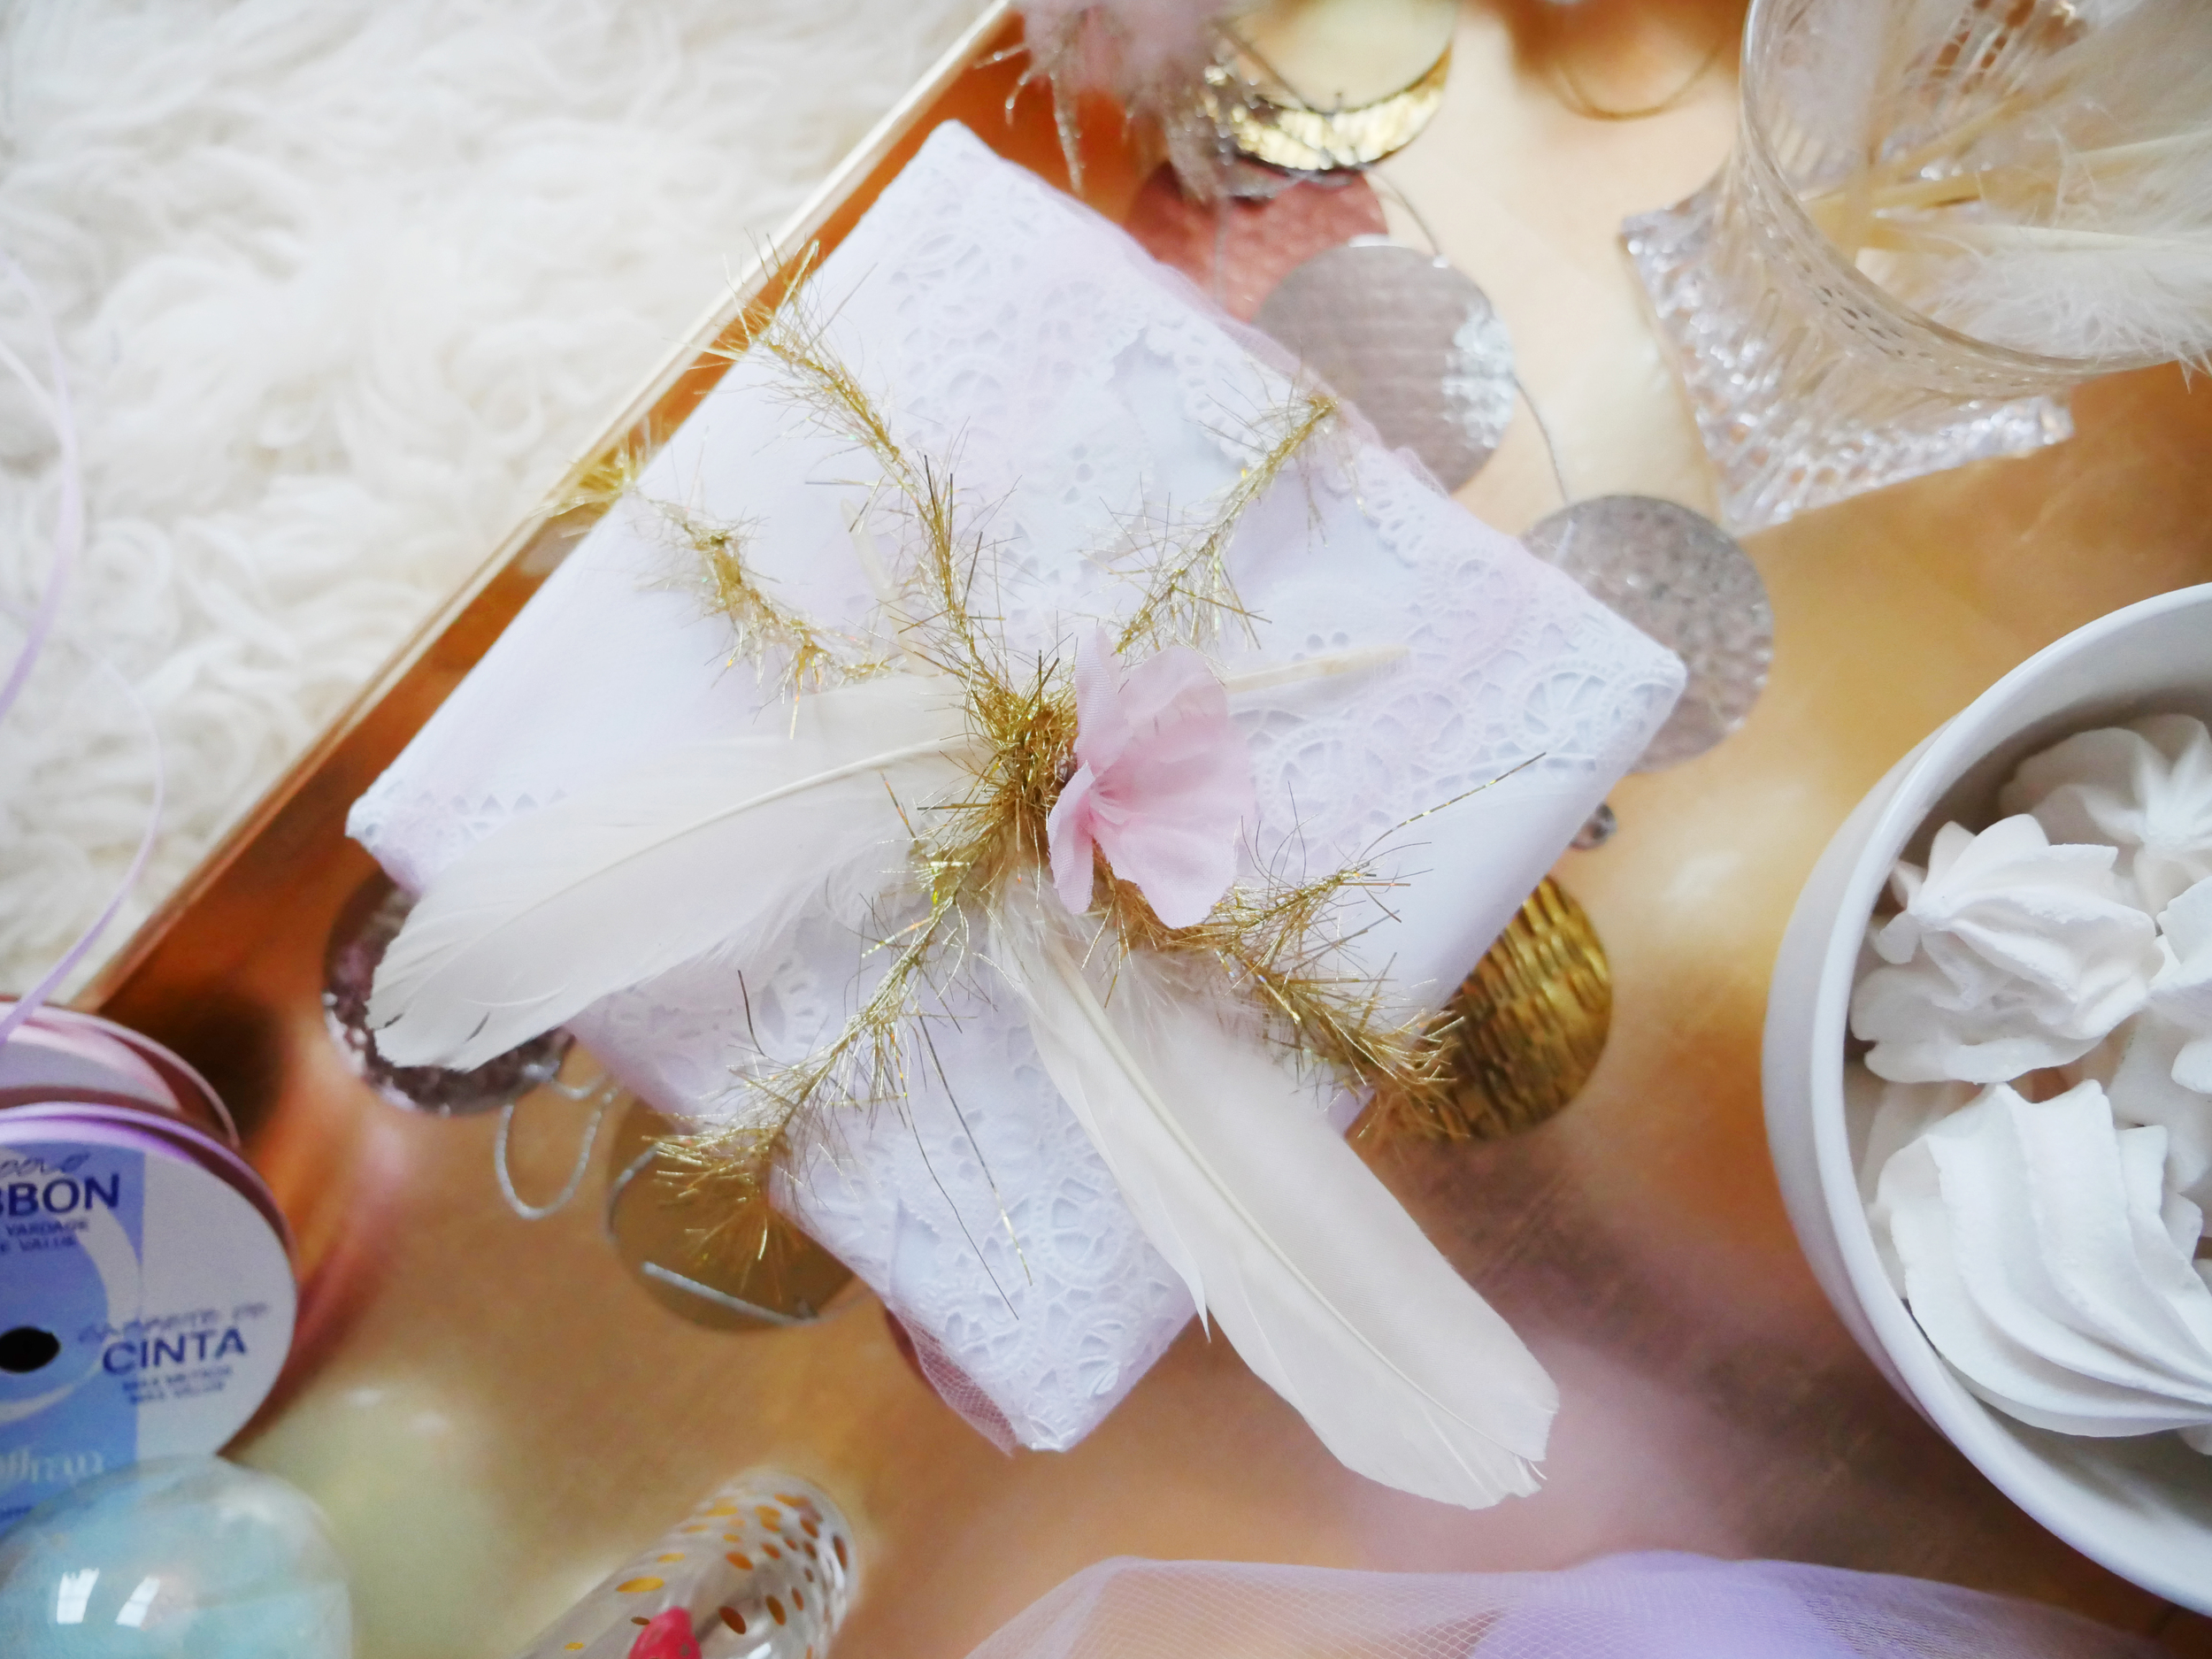 To go the Extra Mile: We wrapped the gift with doilies. Yes!!! Then we wrapped a pink Tulle over it for a soft pinkish hue, tying gold festive trimming with feathers and a cute artificial flower!